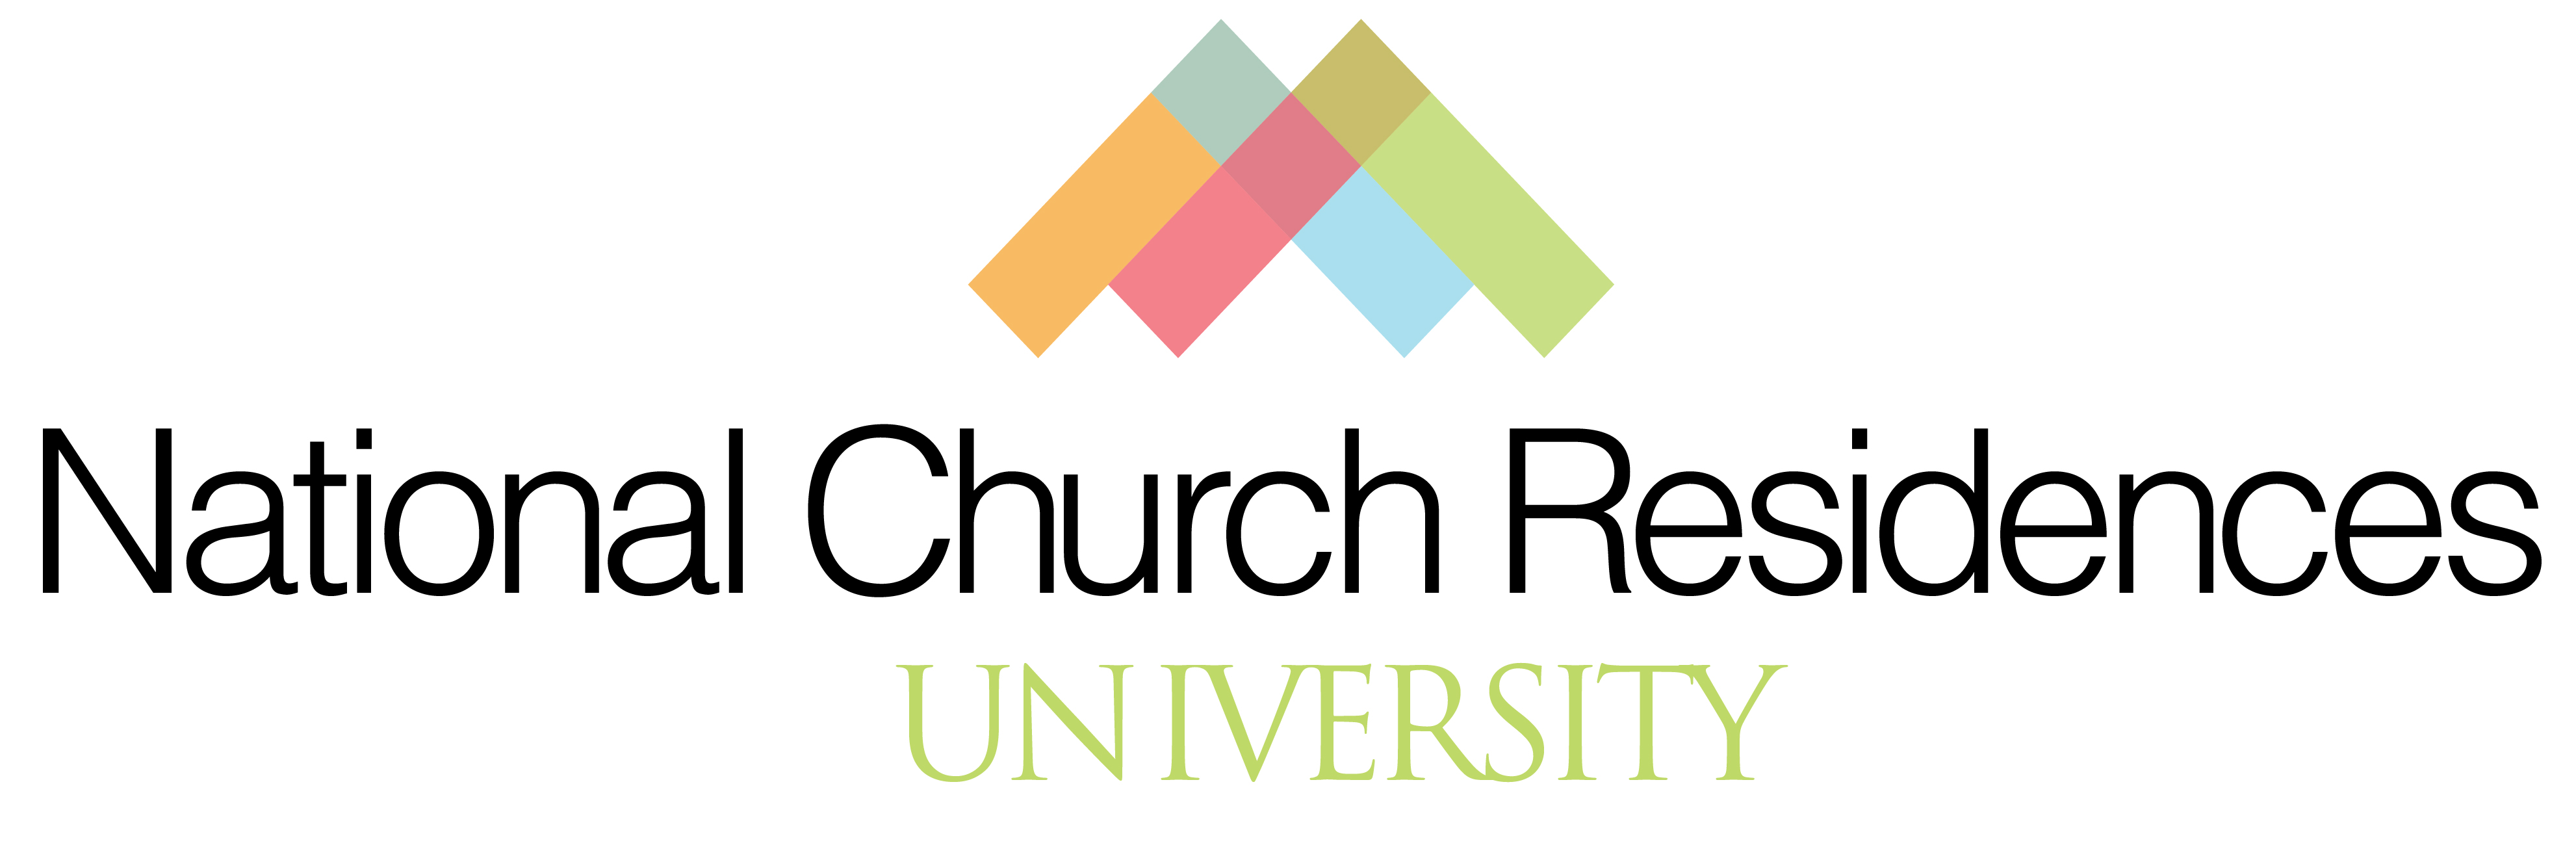 National Church Residences University